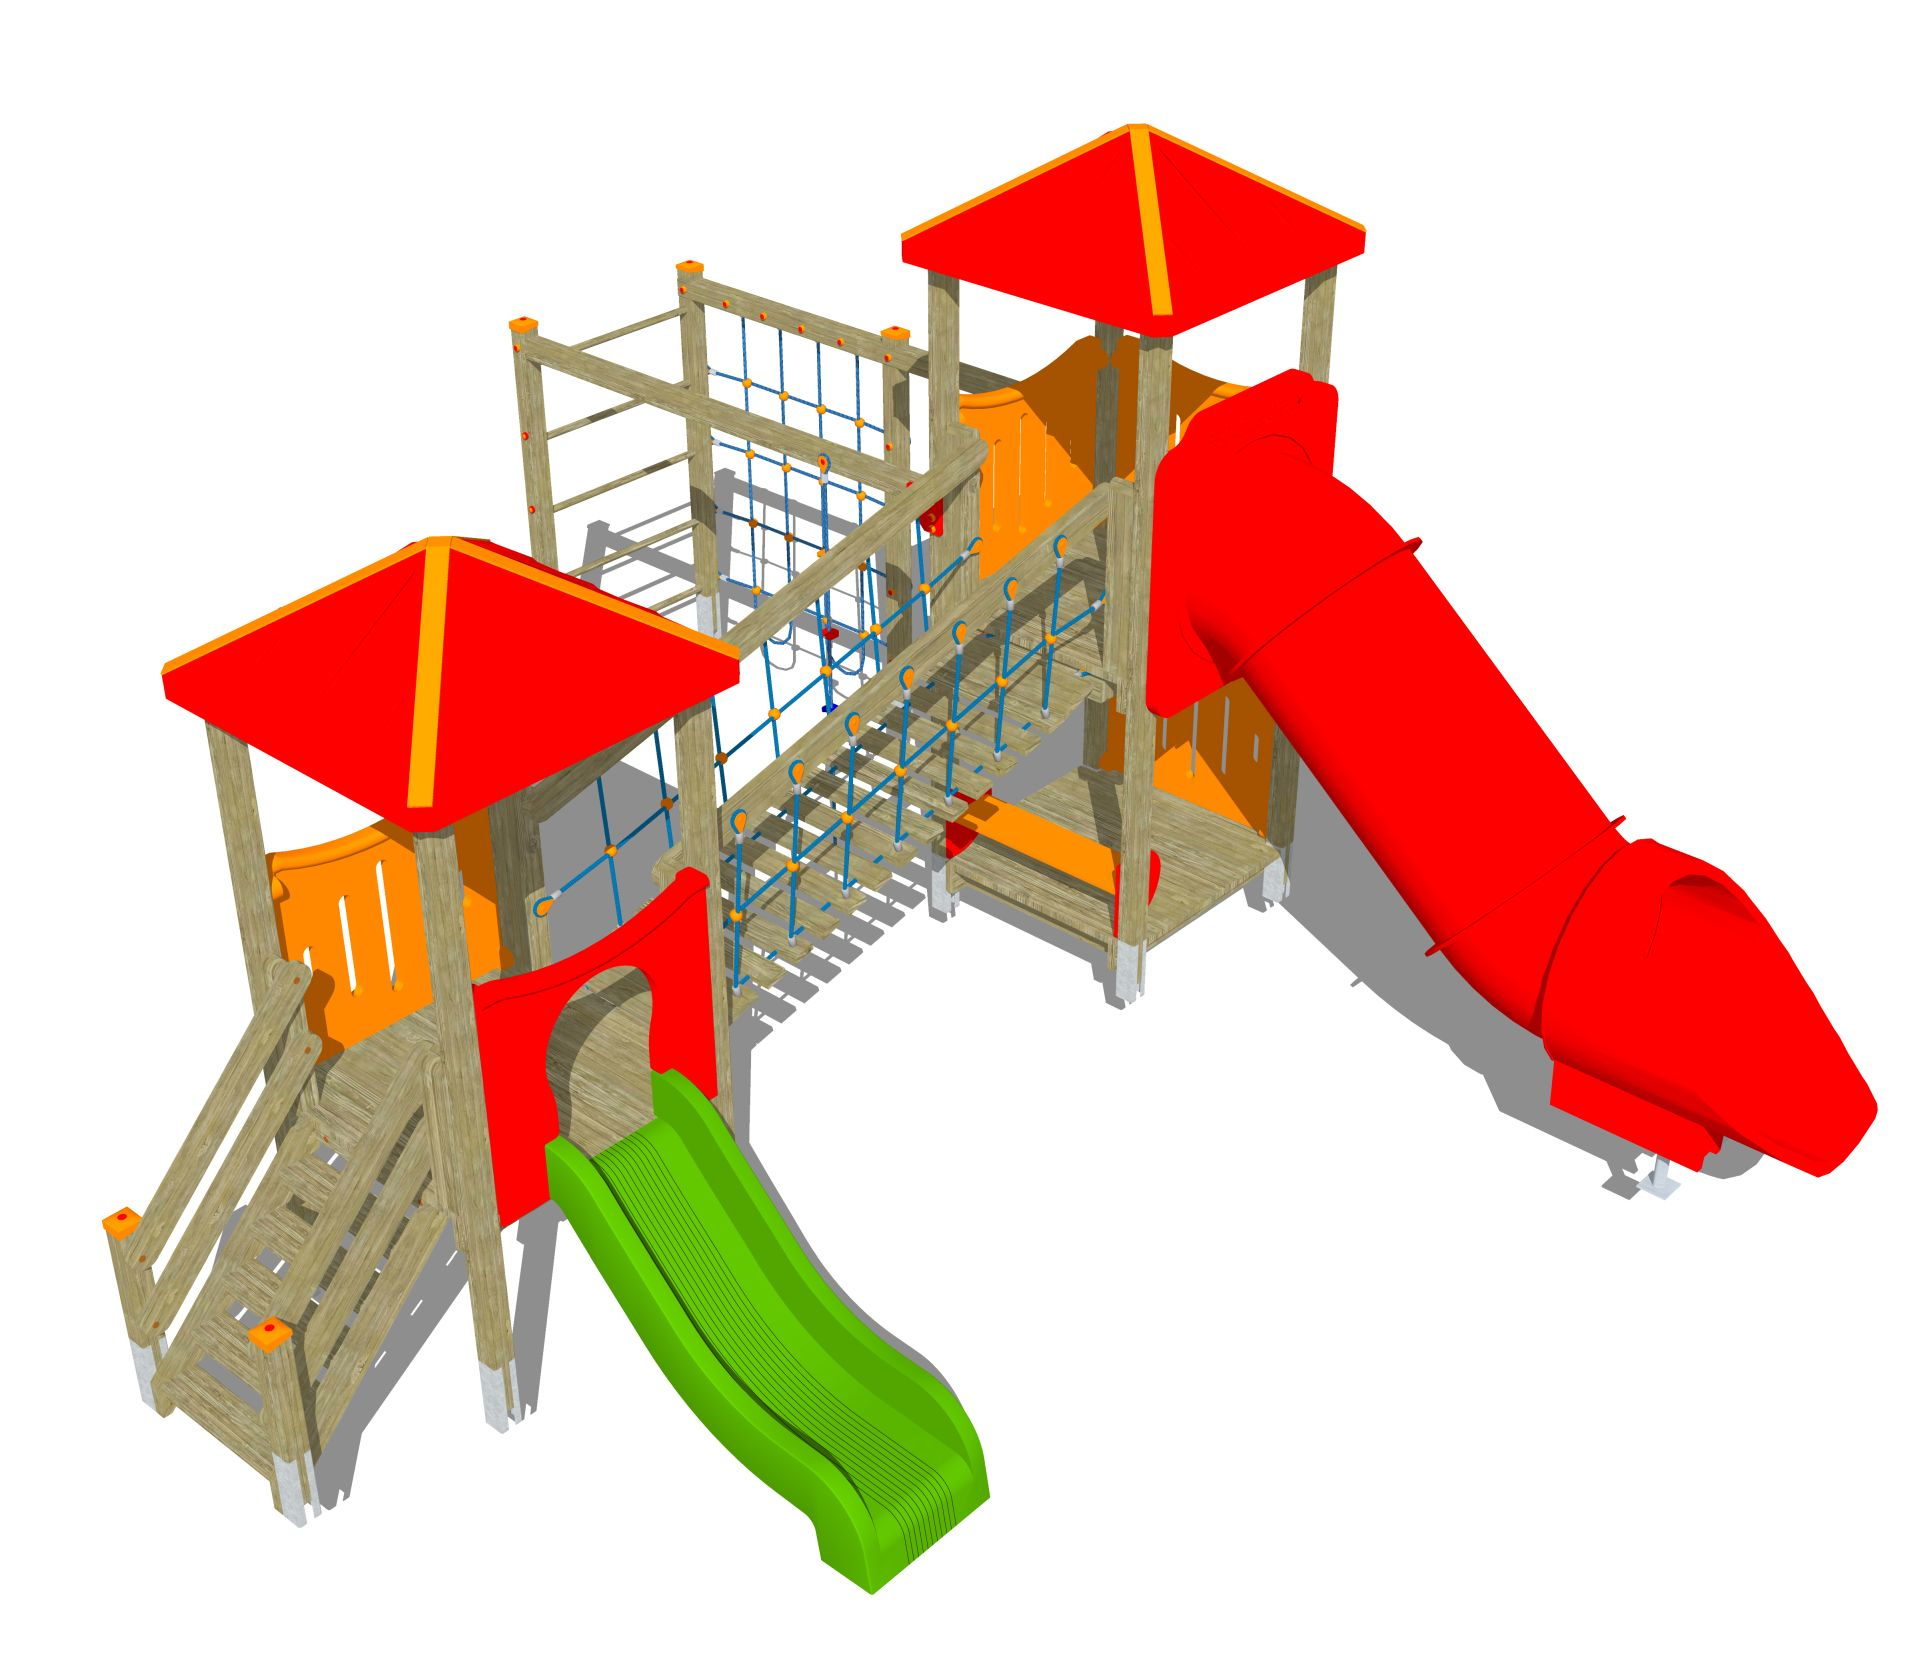 Holzhof MAX & SULTAN Max 2 towers, 1 polyethylene slide h 84 + 1 tubular h 144 + stairway + rope wall climber + bridge